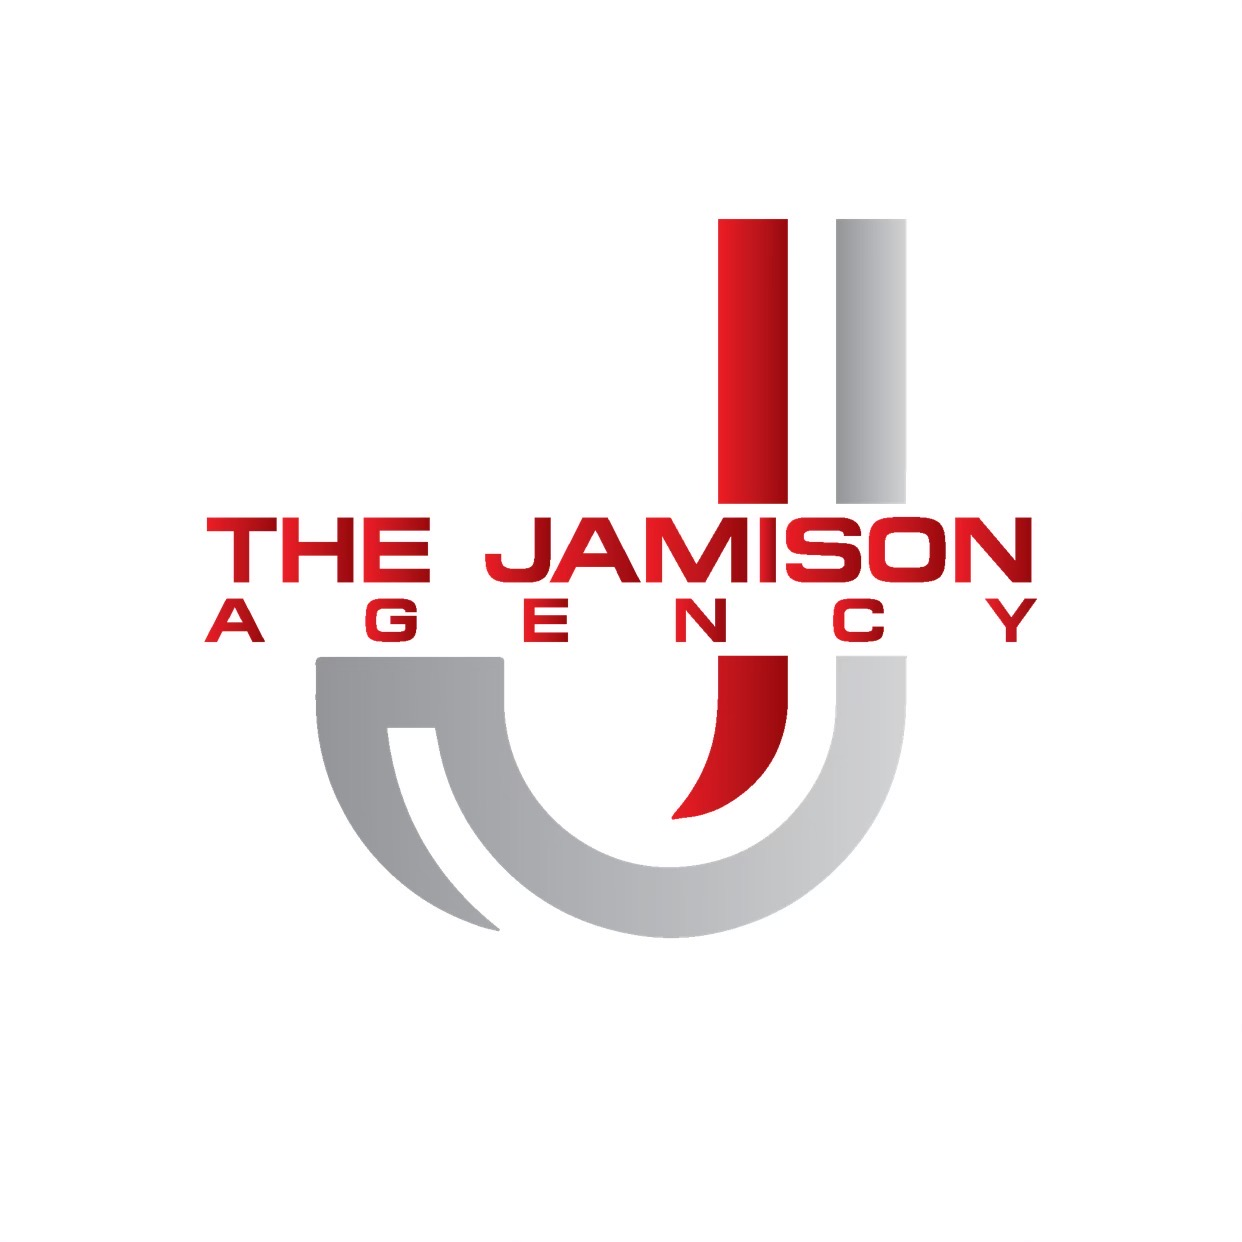 The Jamison Agency